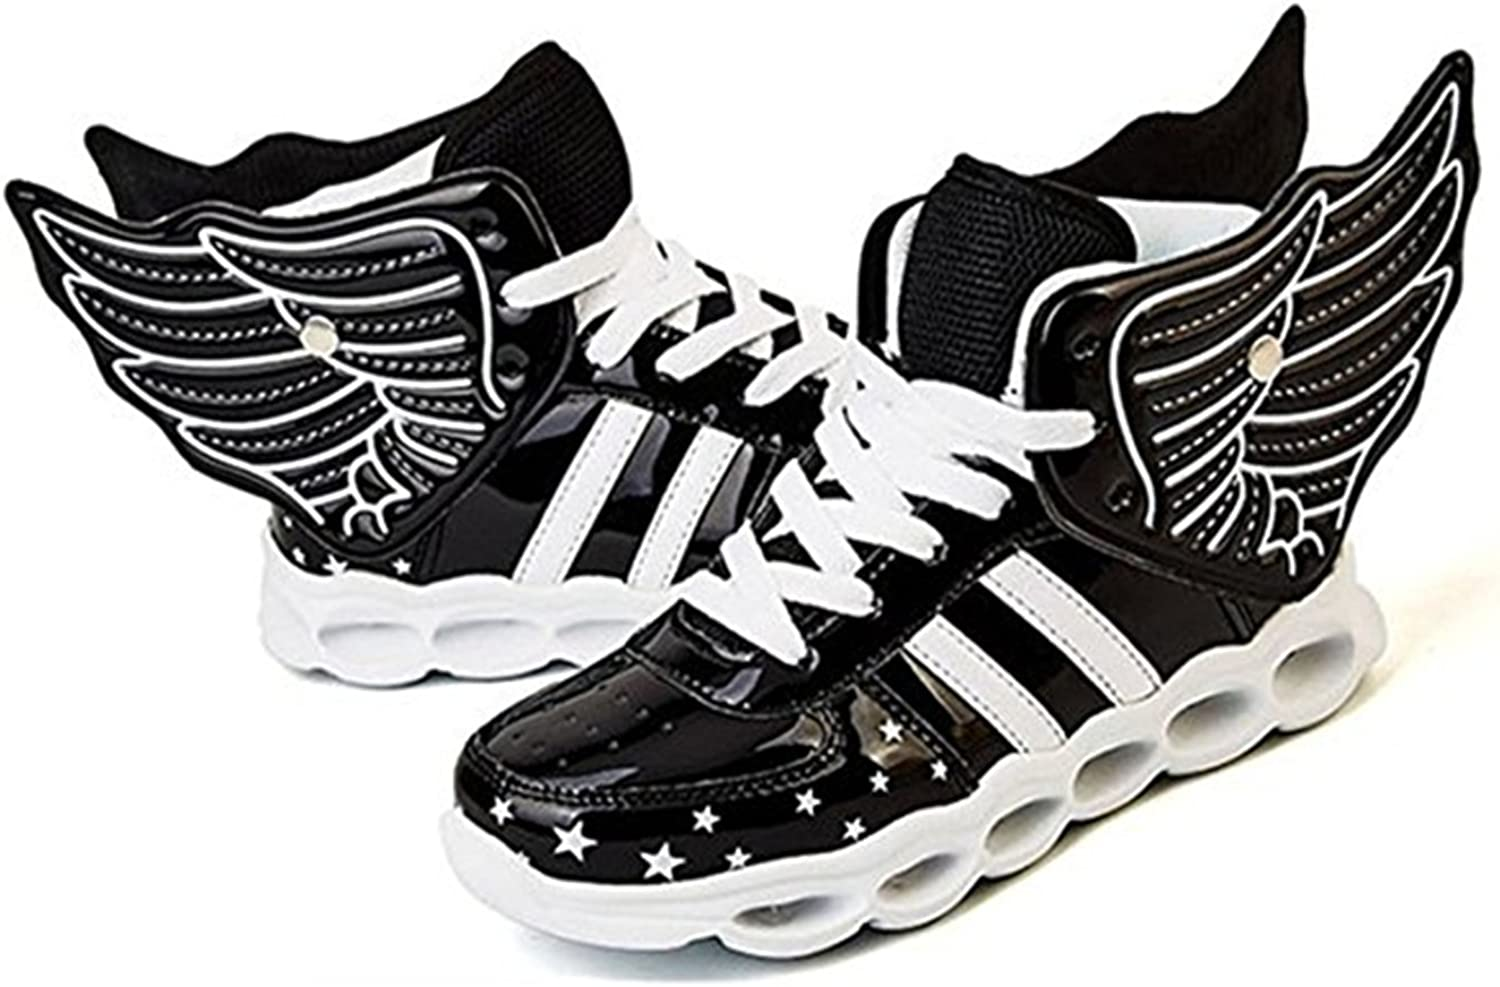 A2kmsmss5a Kids Breathable 7 Colors LED Sneakers Sport Shoes USB Rechargable Child Lace up Flashing Shoes